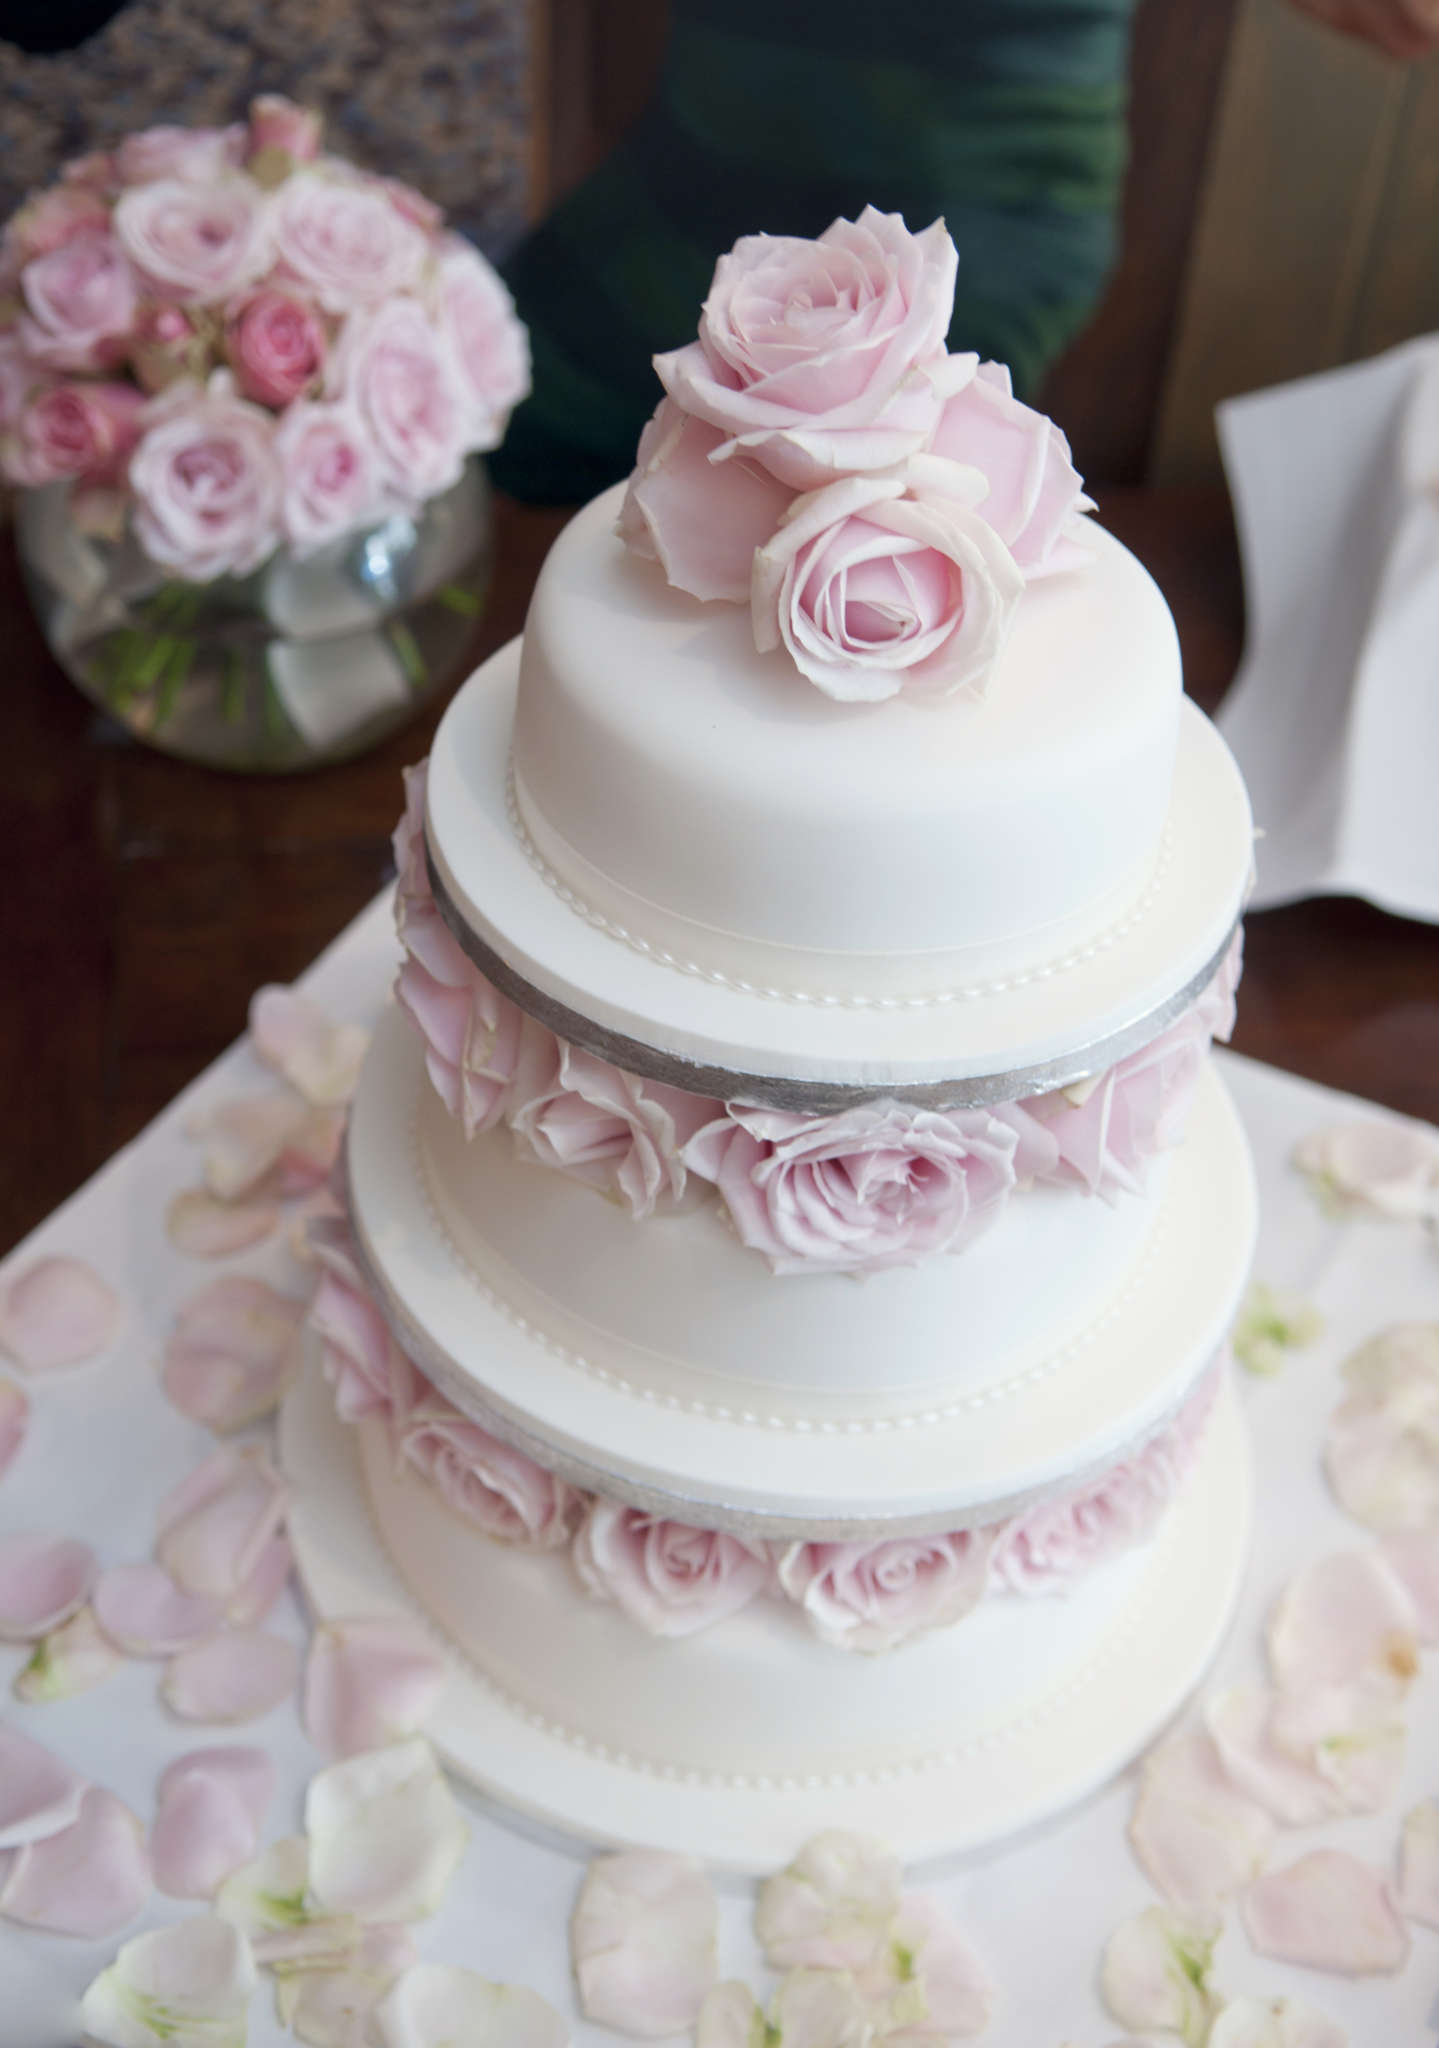 Wedding Cake Design Names : First Wedding Anniversary Gift   Gillian Pearce ~ The ...